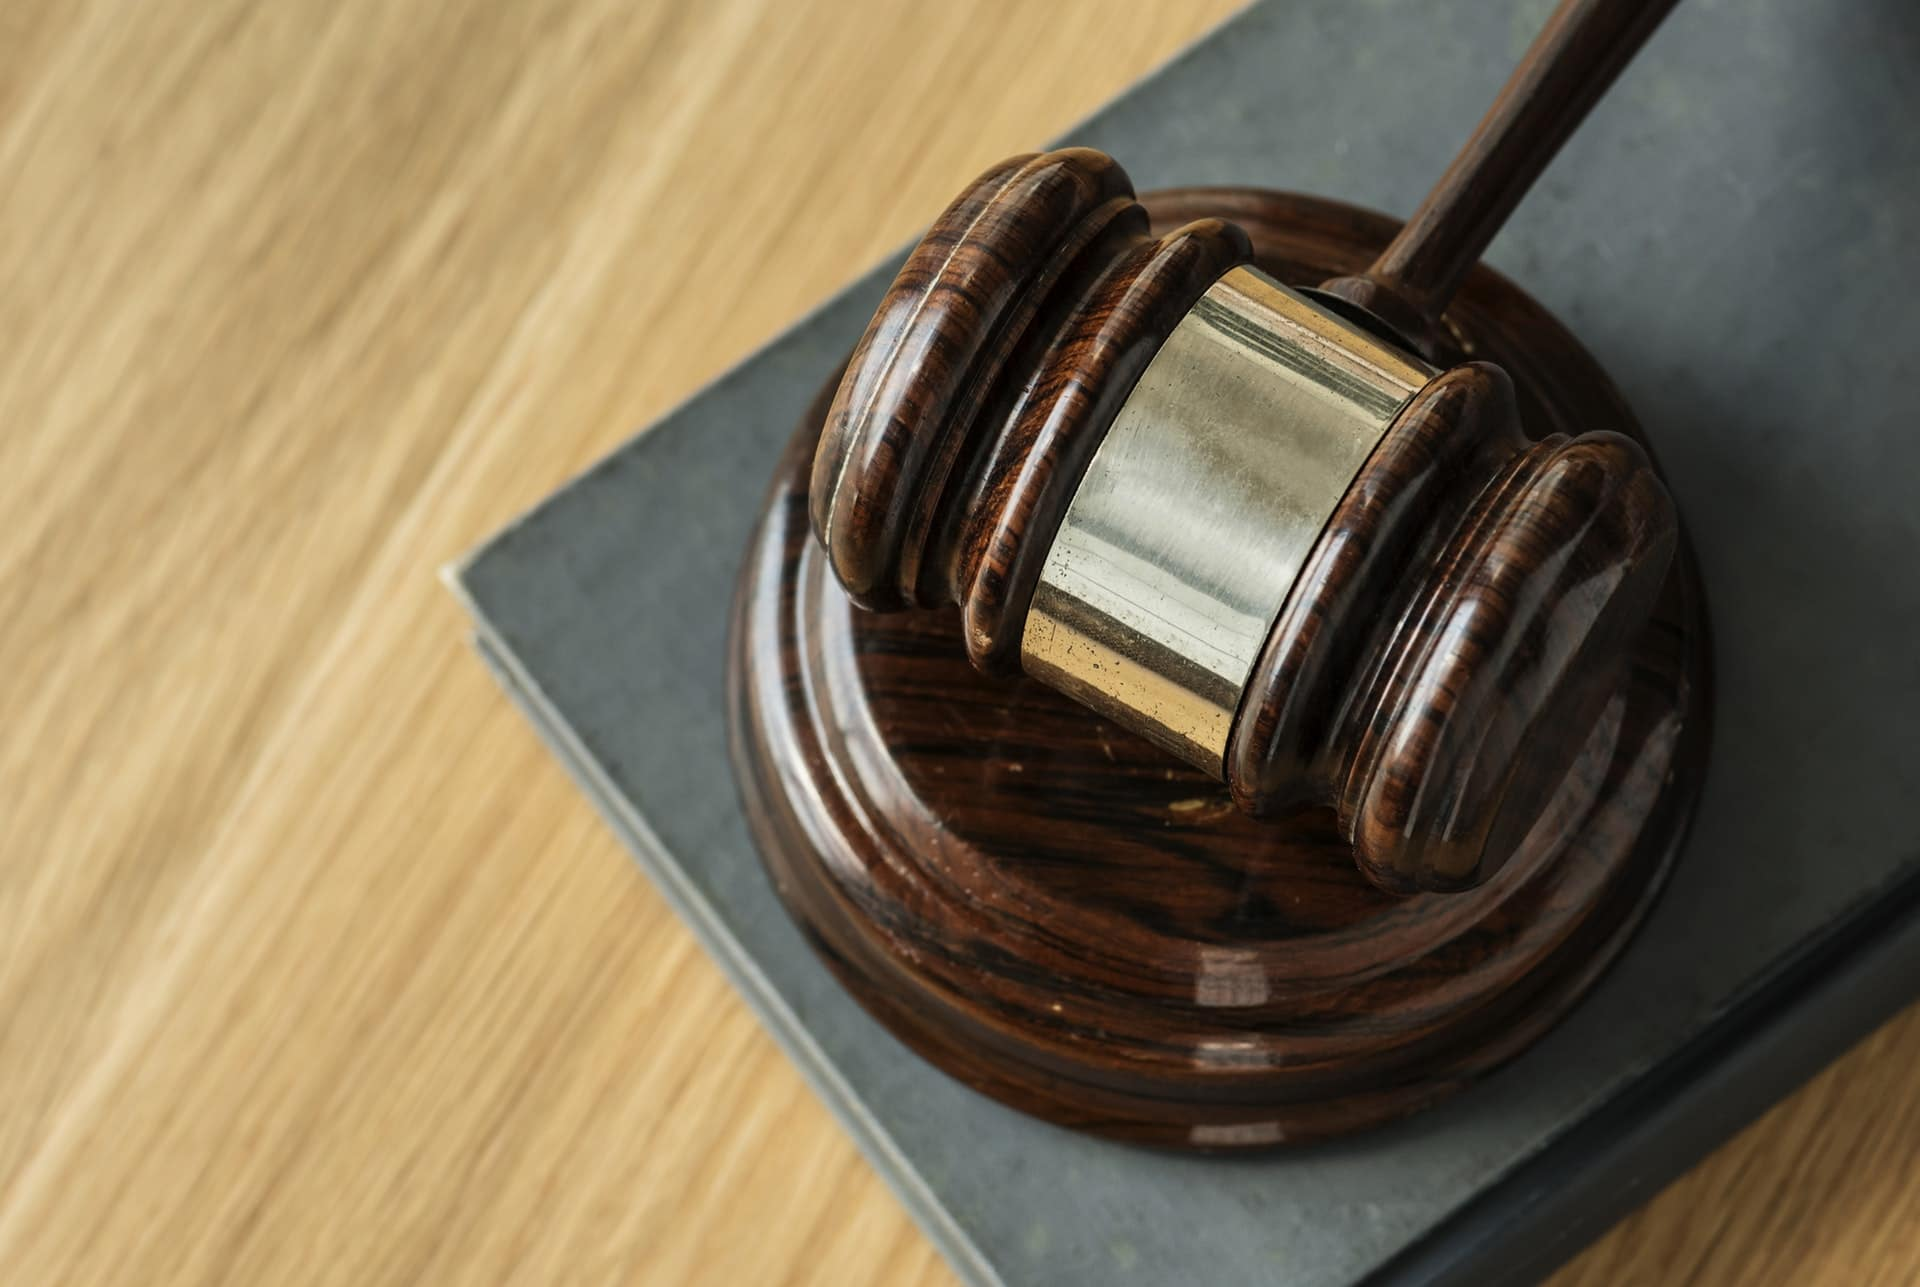 State Judicial Nomination Commission Selects Three Candidates for